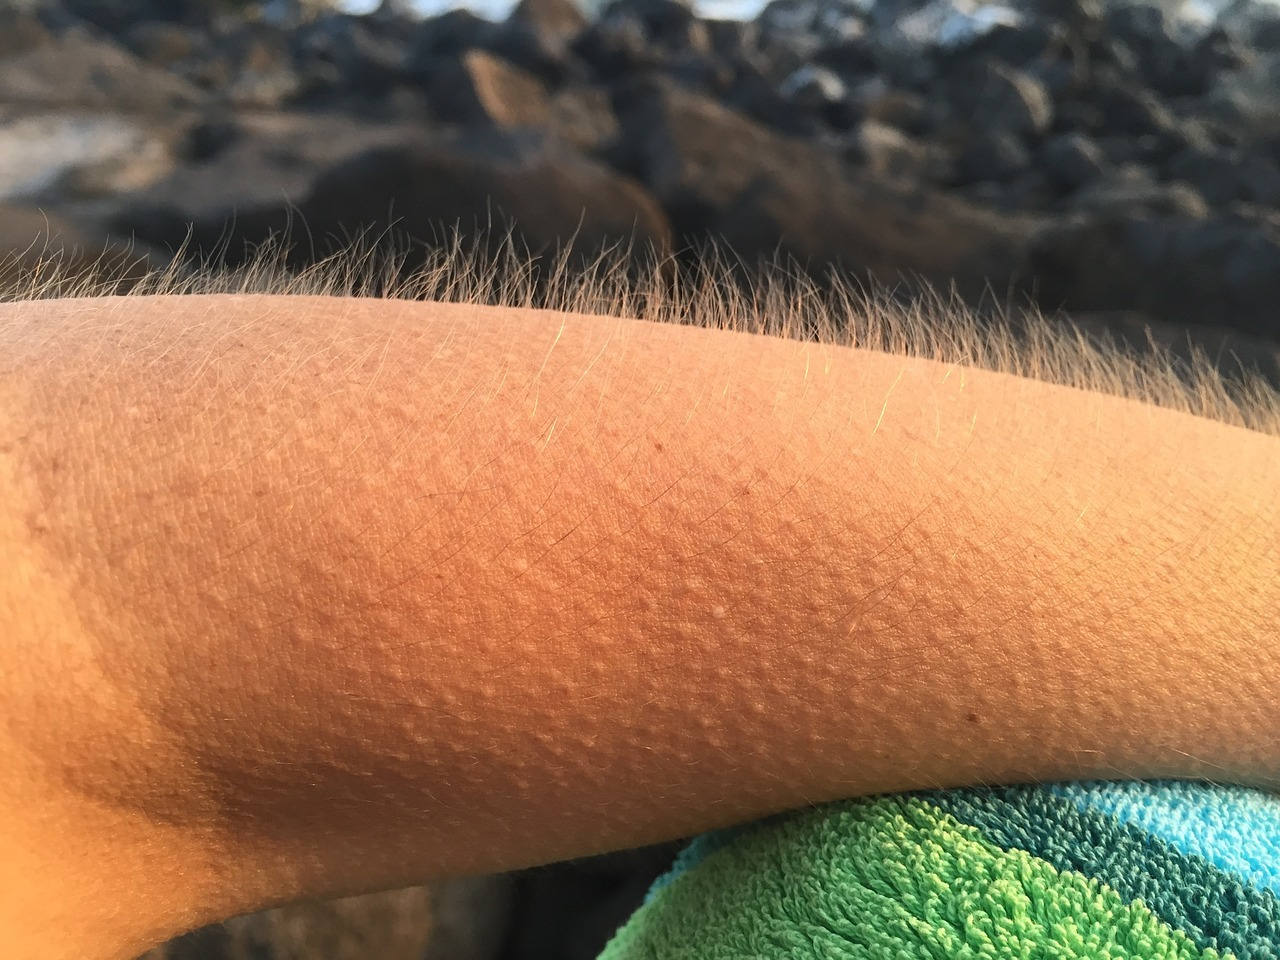 Goose Bumps: What Causes Them photo